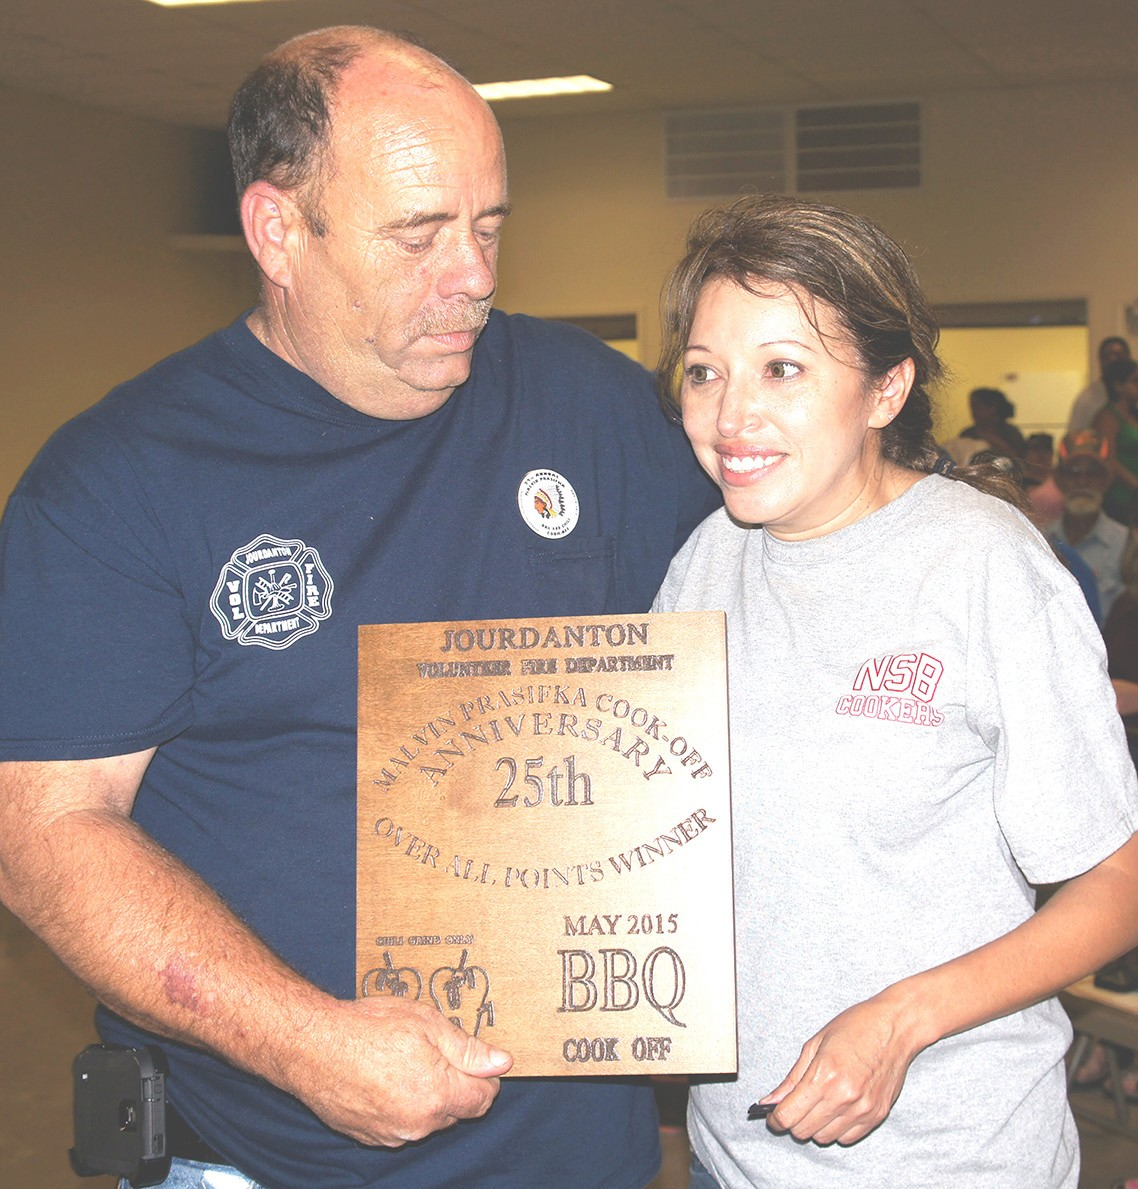 David Prasifka presents a plaque to Jackie Milligan, the overall winner at the 2015 Jourdanton Volunteer Fire Department Malvin Prasifka BBQ and Chili Cook-Off. Be sure to make plans to attend this year's cook-off this Friday through Sunday, May 20-22 at the American Legion Hall.